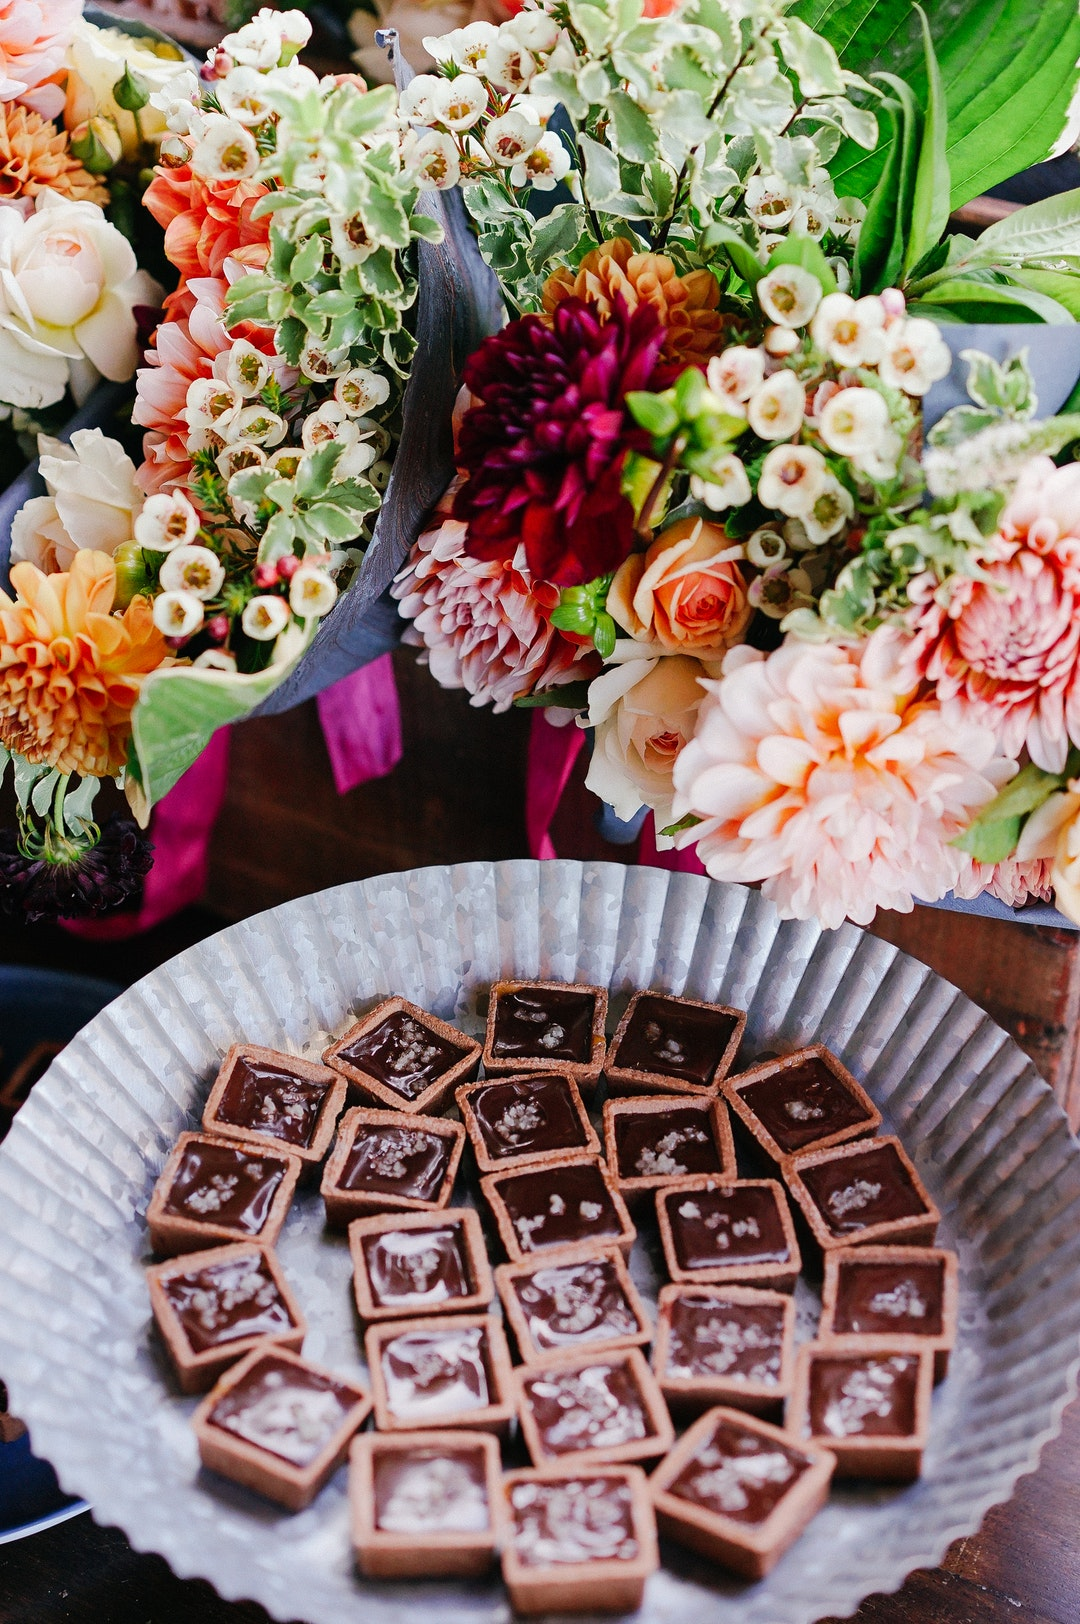 buffet with flowers and chocolates